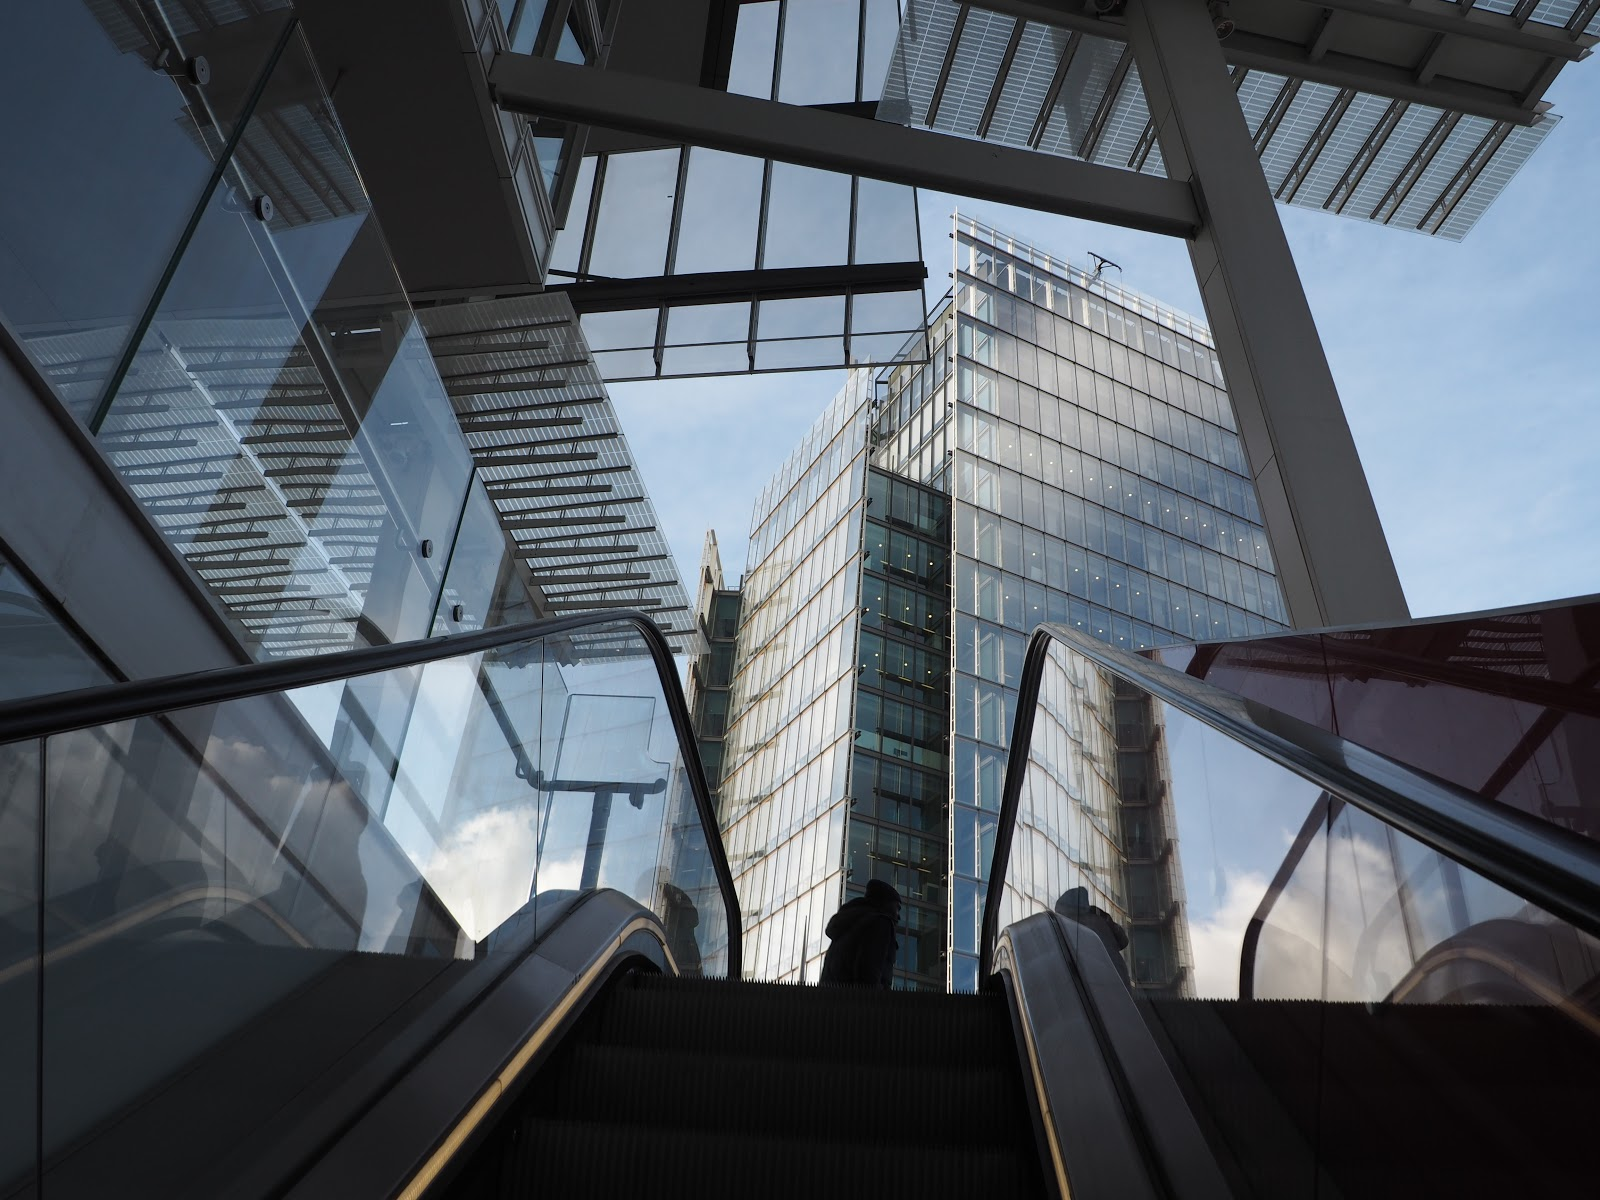 Architecture In the City of London at The Shard